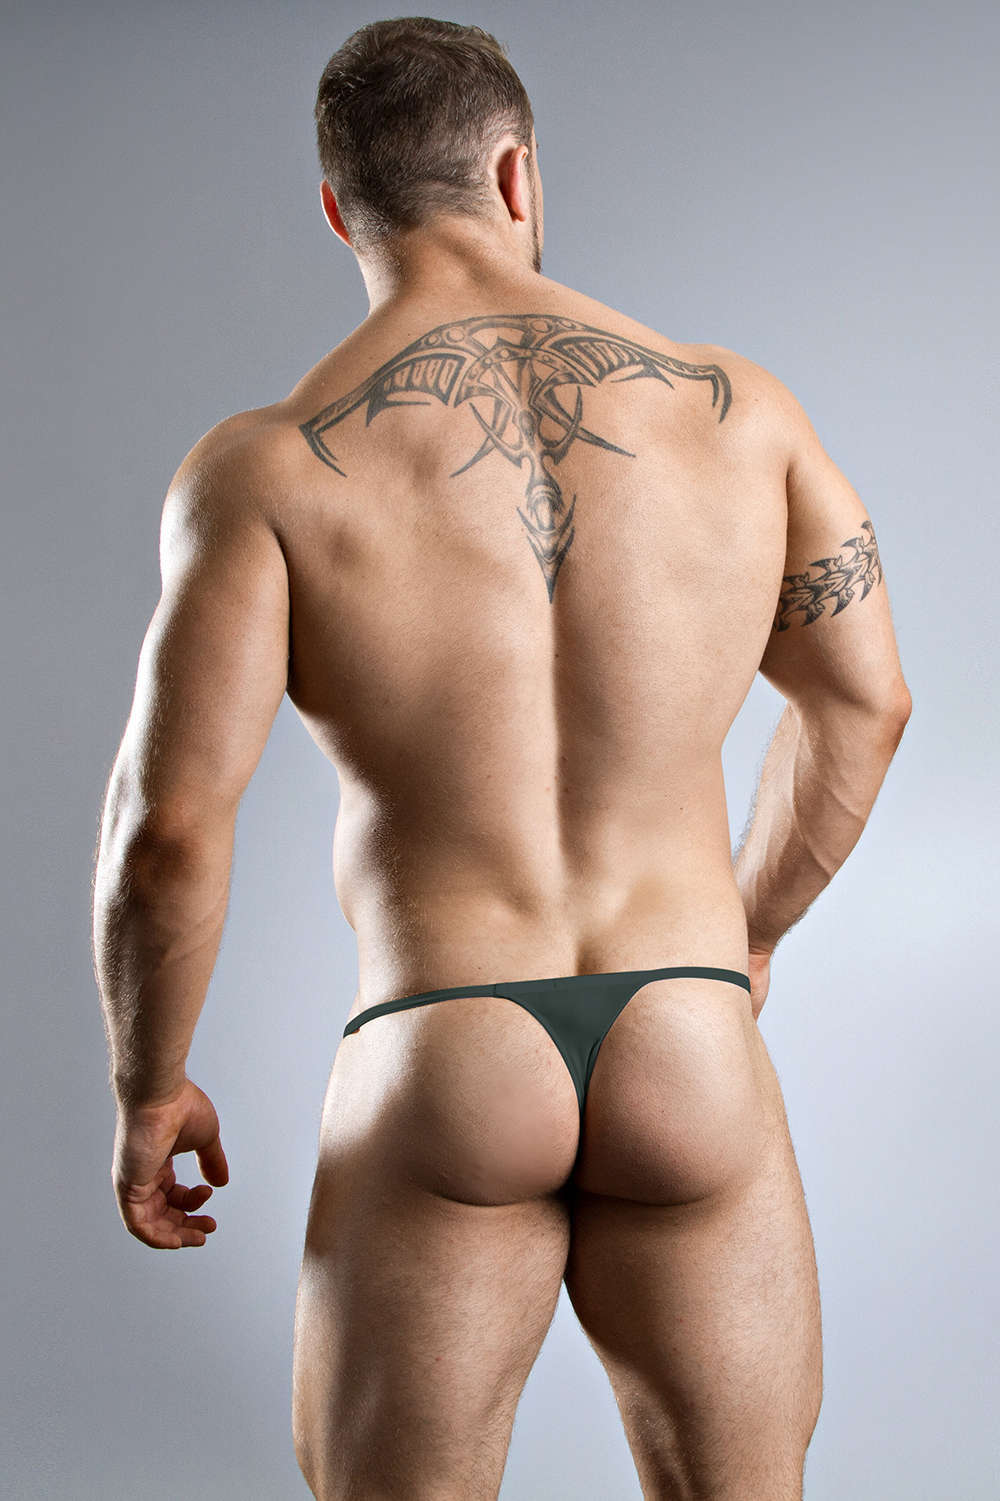 What's Hot in the UK - Rear View Part II